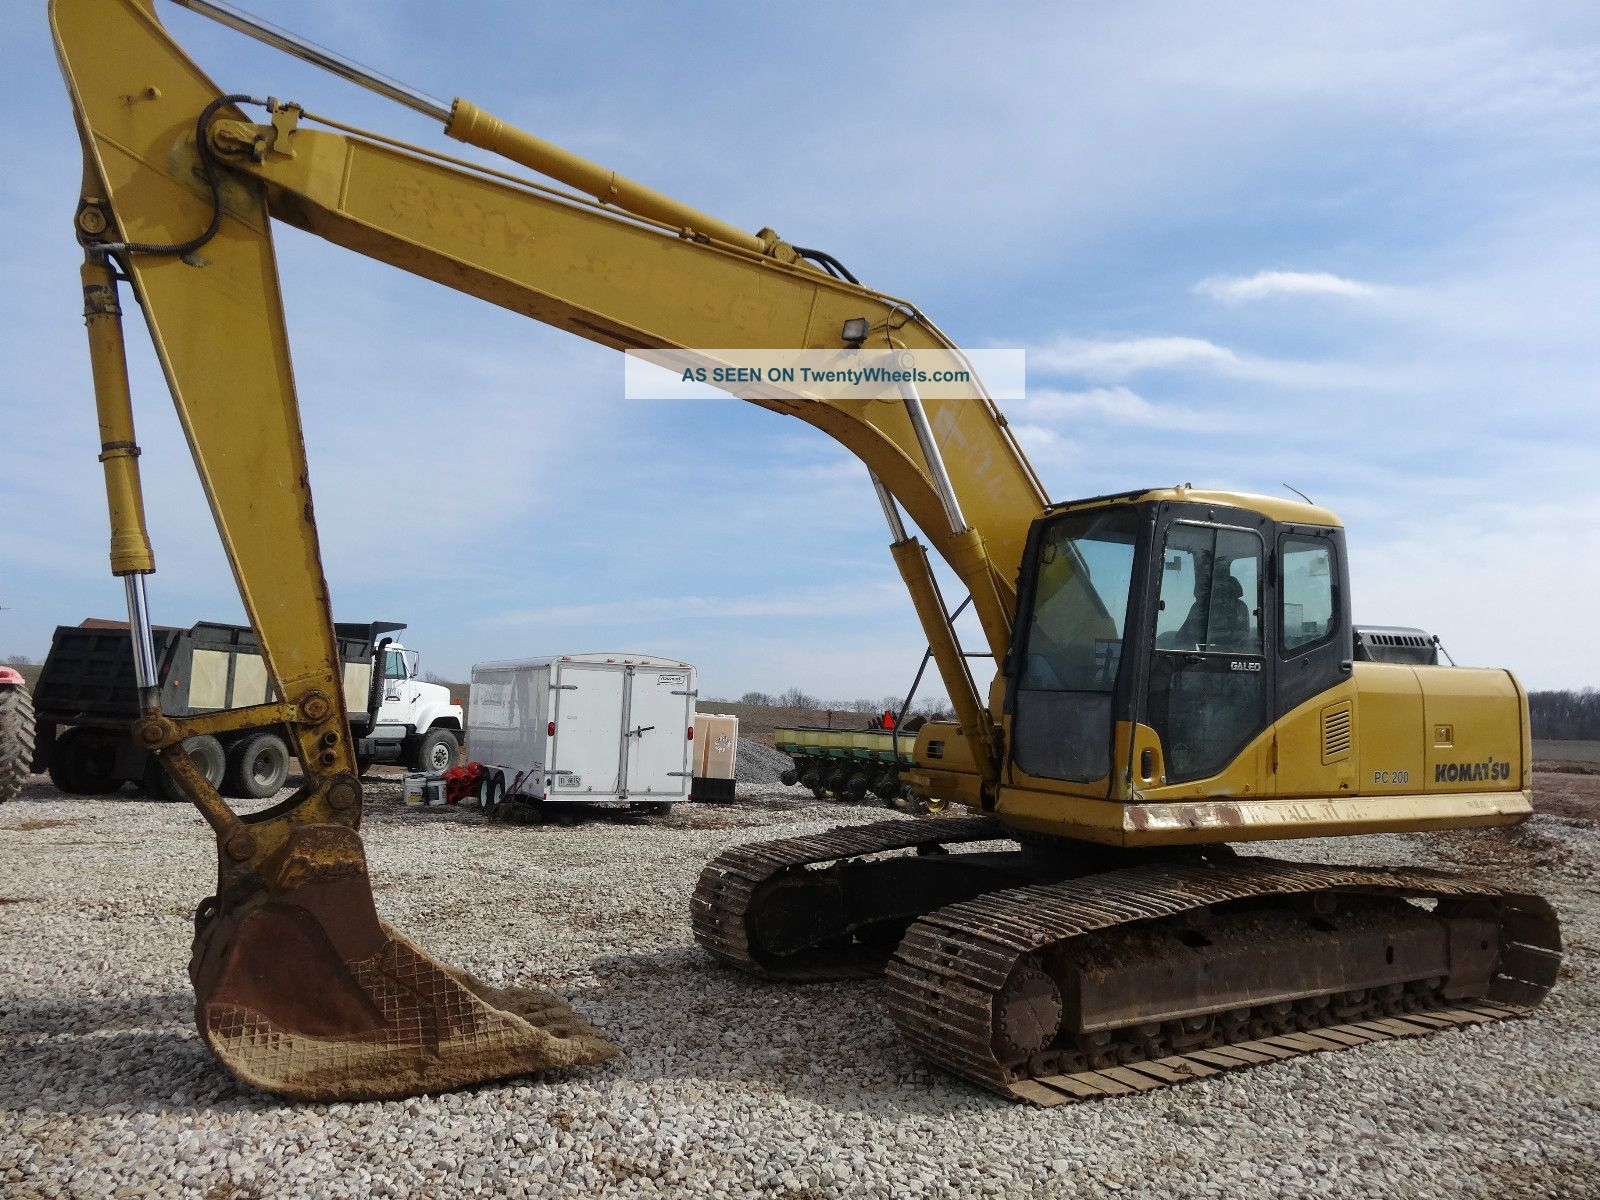 2003 Komatsu Pc 200 Lc - 7 Excavator With 5700hrs Ready To Go To Work Excavators photo